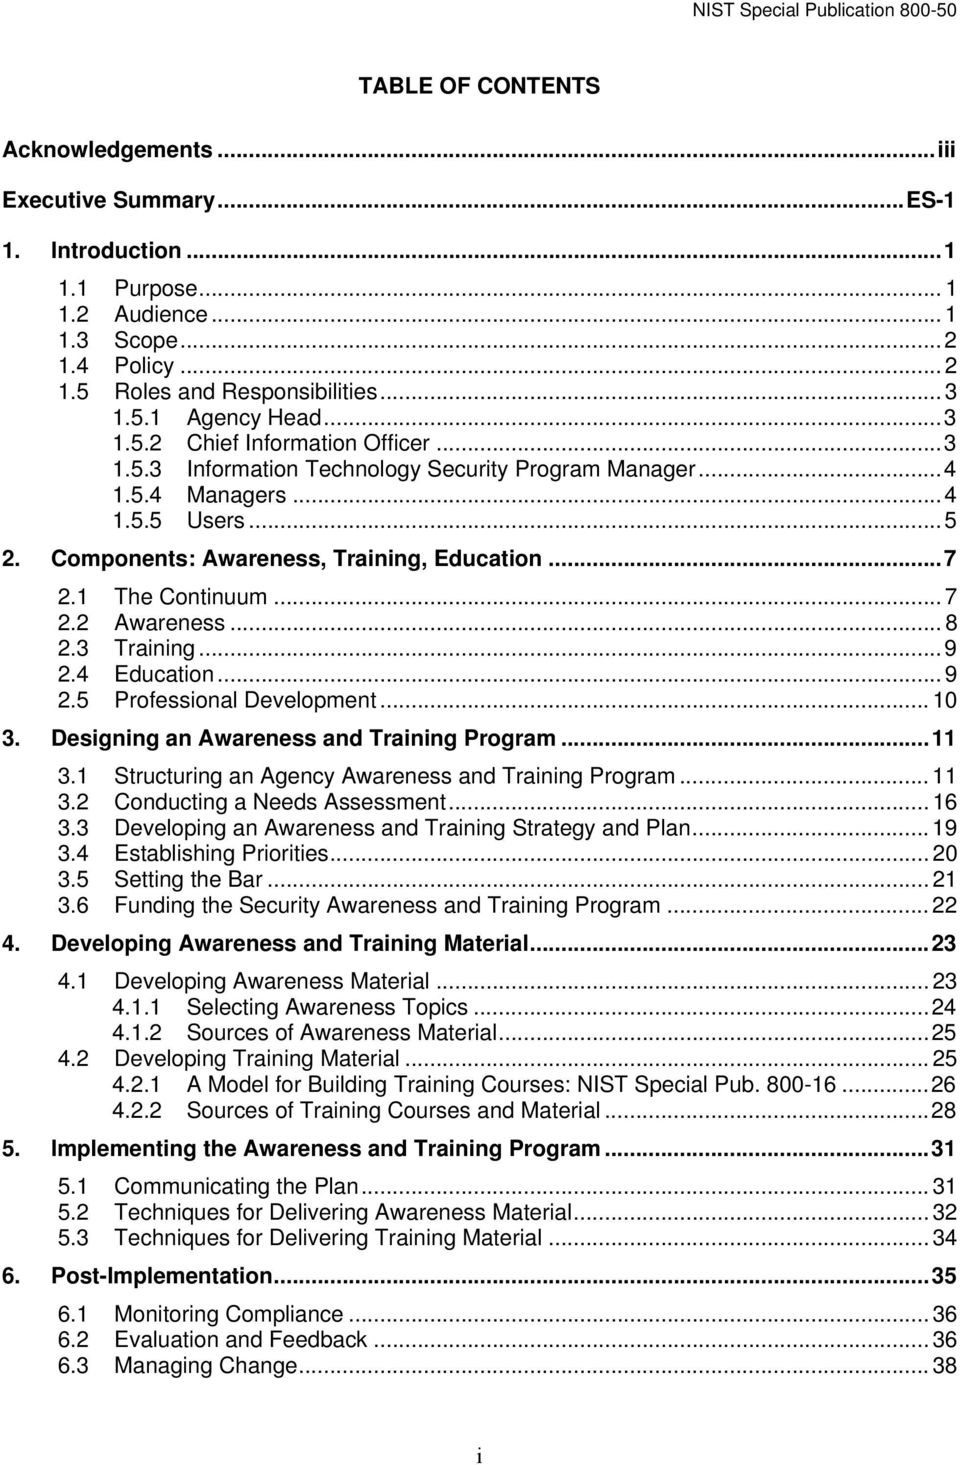 1 The Continuum... 7 2.2 Awareness... 8 2.3 Training...9 2.4 Education... 9 2.5 Professional Development... 10 3. Designing an Awareness and Training Program...11 3.